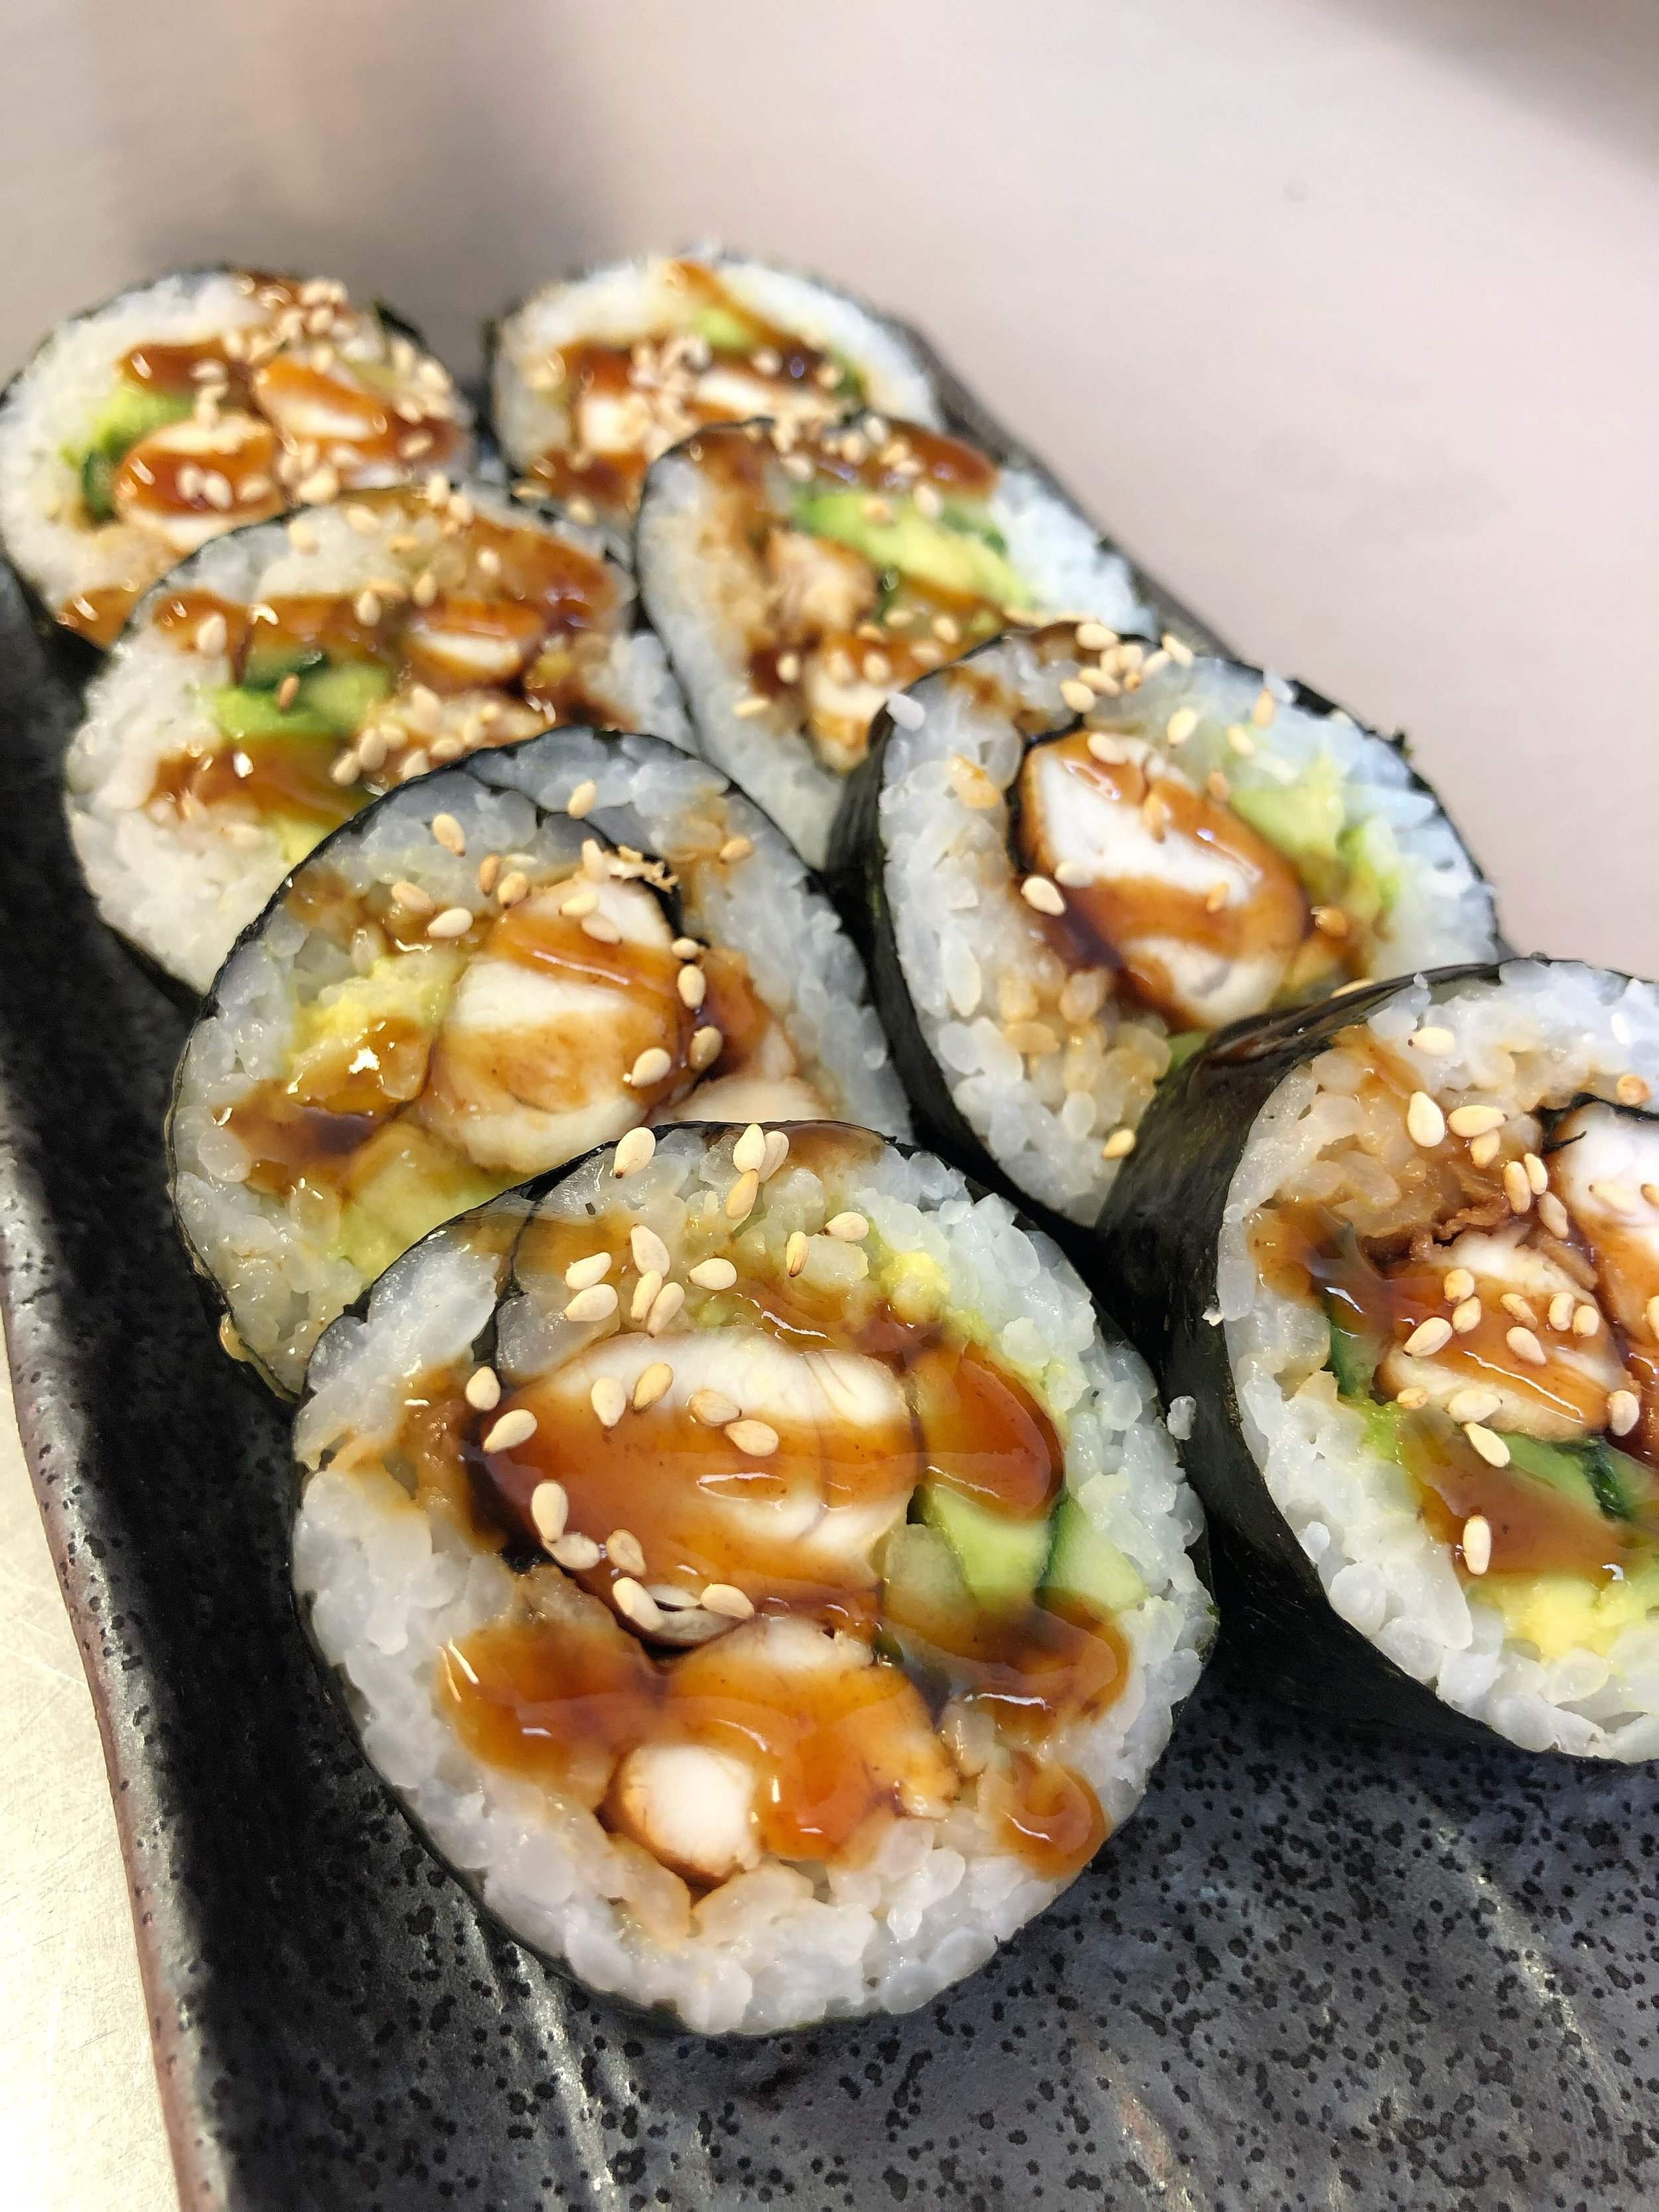 Teriyaki Chicken Futomaki - £6.50    contains gluten